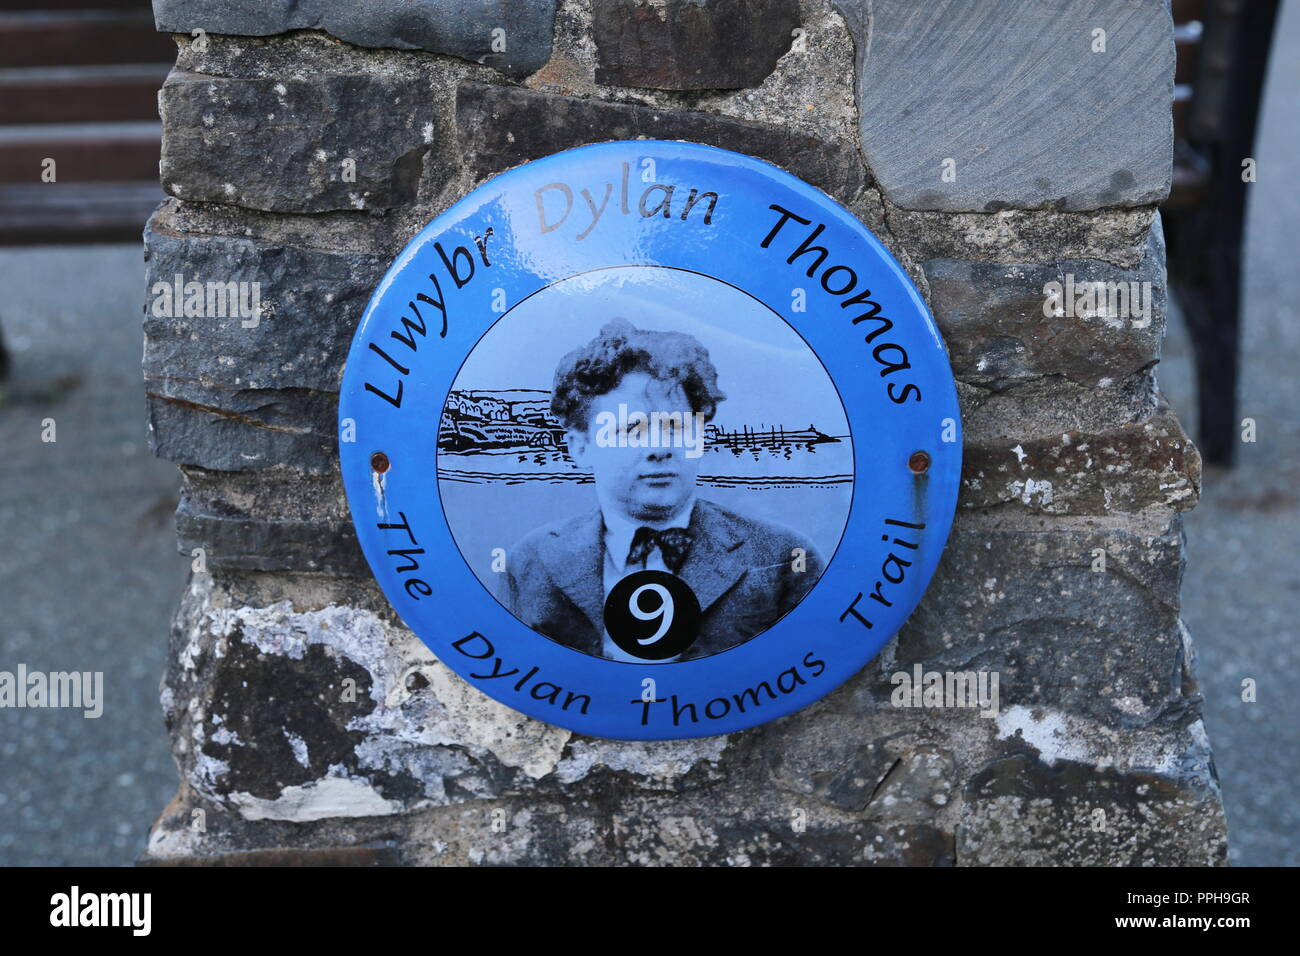 Plaque marking point of interest on the Dylan Thomas Trail, New Quay, Cardigan Bay, Ceredigion, Wales, Great Britain, United Kingdom, UK, Europe - Stock Image